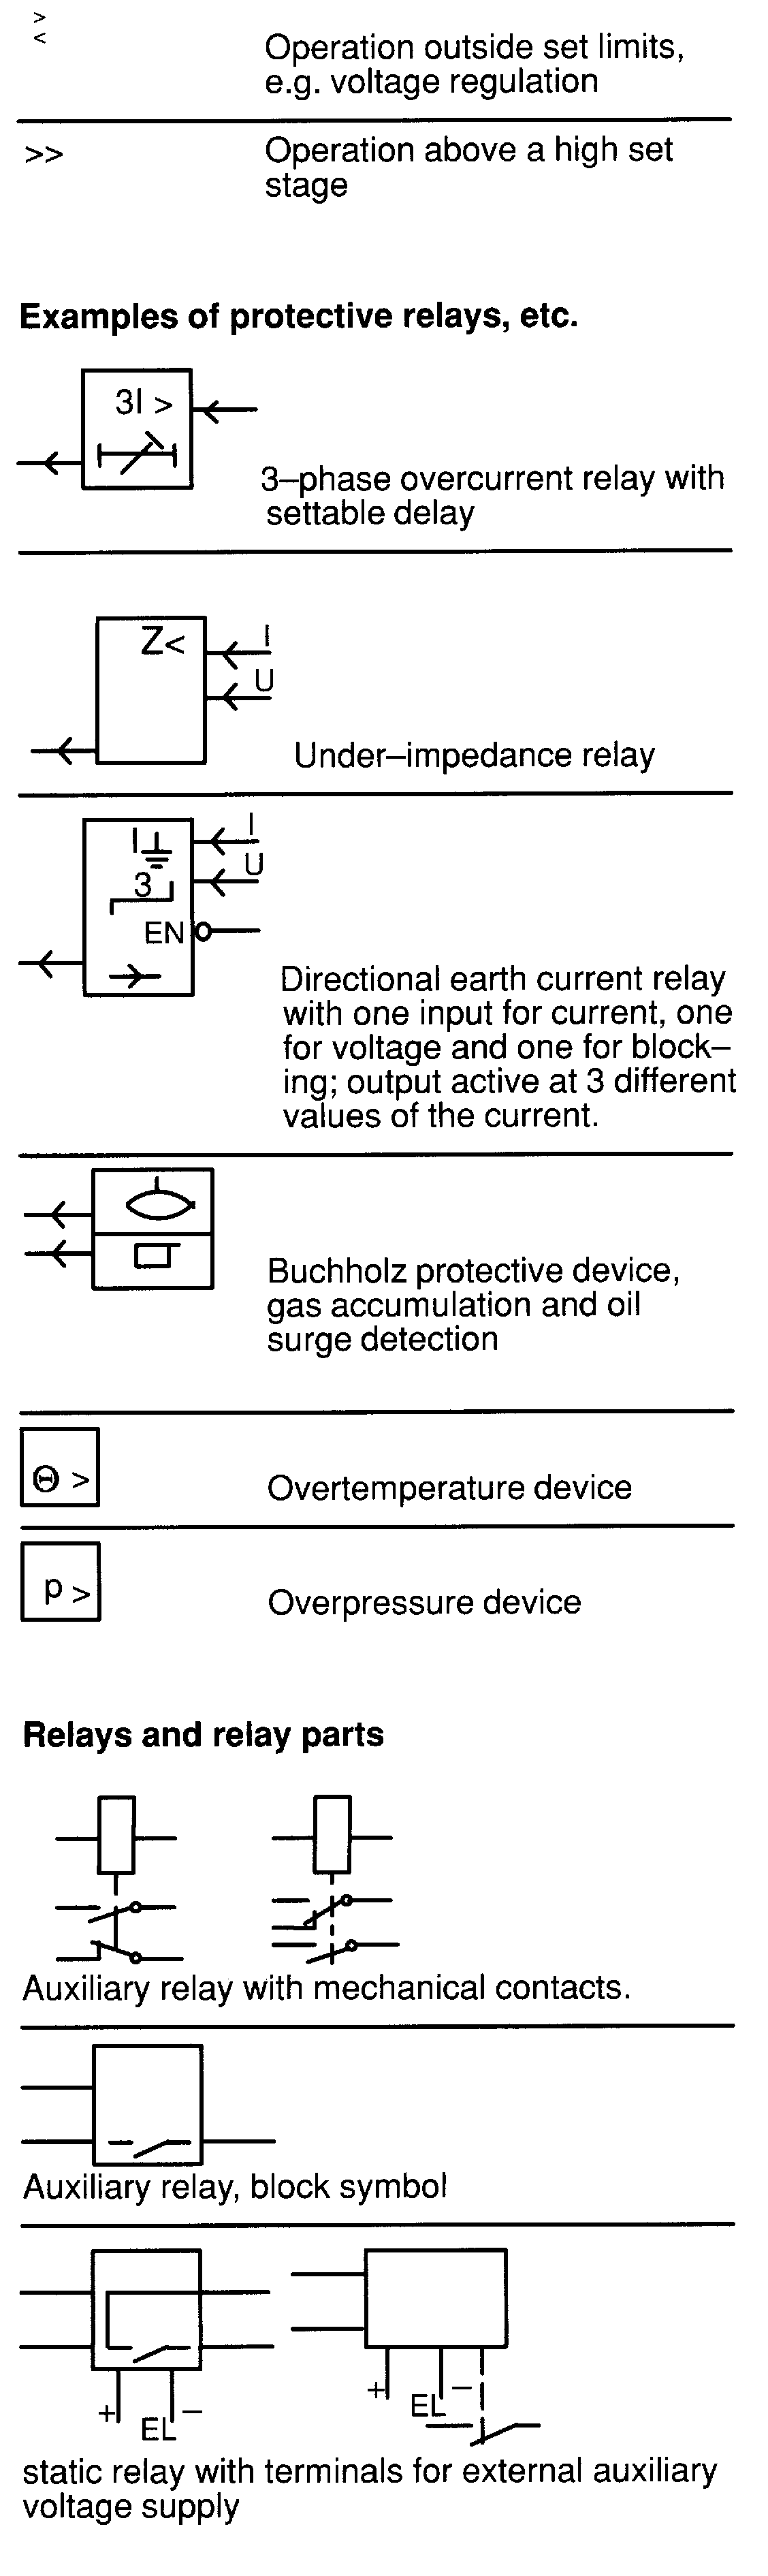 Relay Symbols And Device Numbers Selection From Iec 617